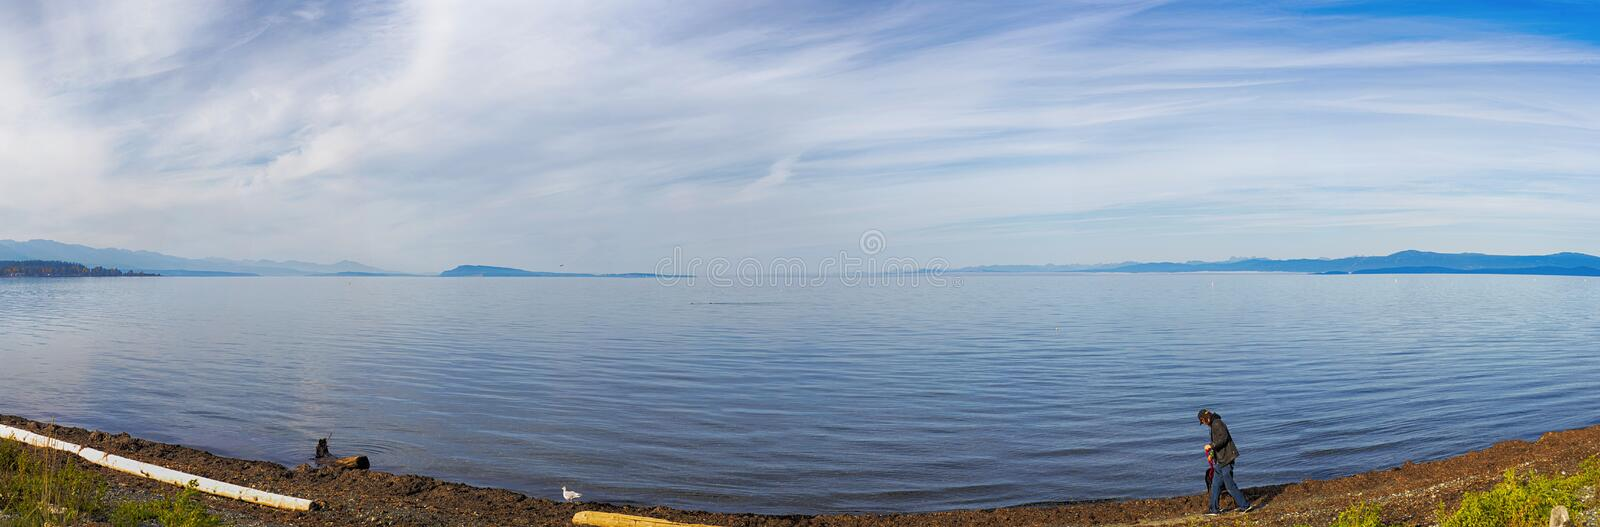 Panoramic view of qualicum beach in vancouver island, BC, canada. Seaside panoramic view at qualicum beach in vancouver island, british columbia, canada stock image